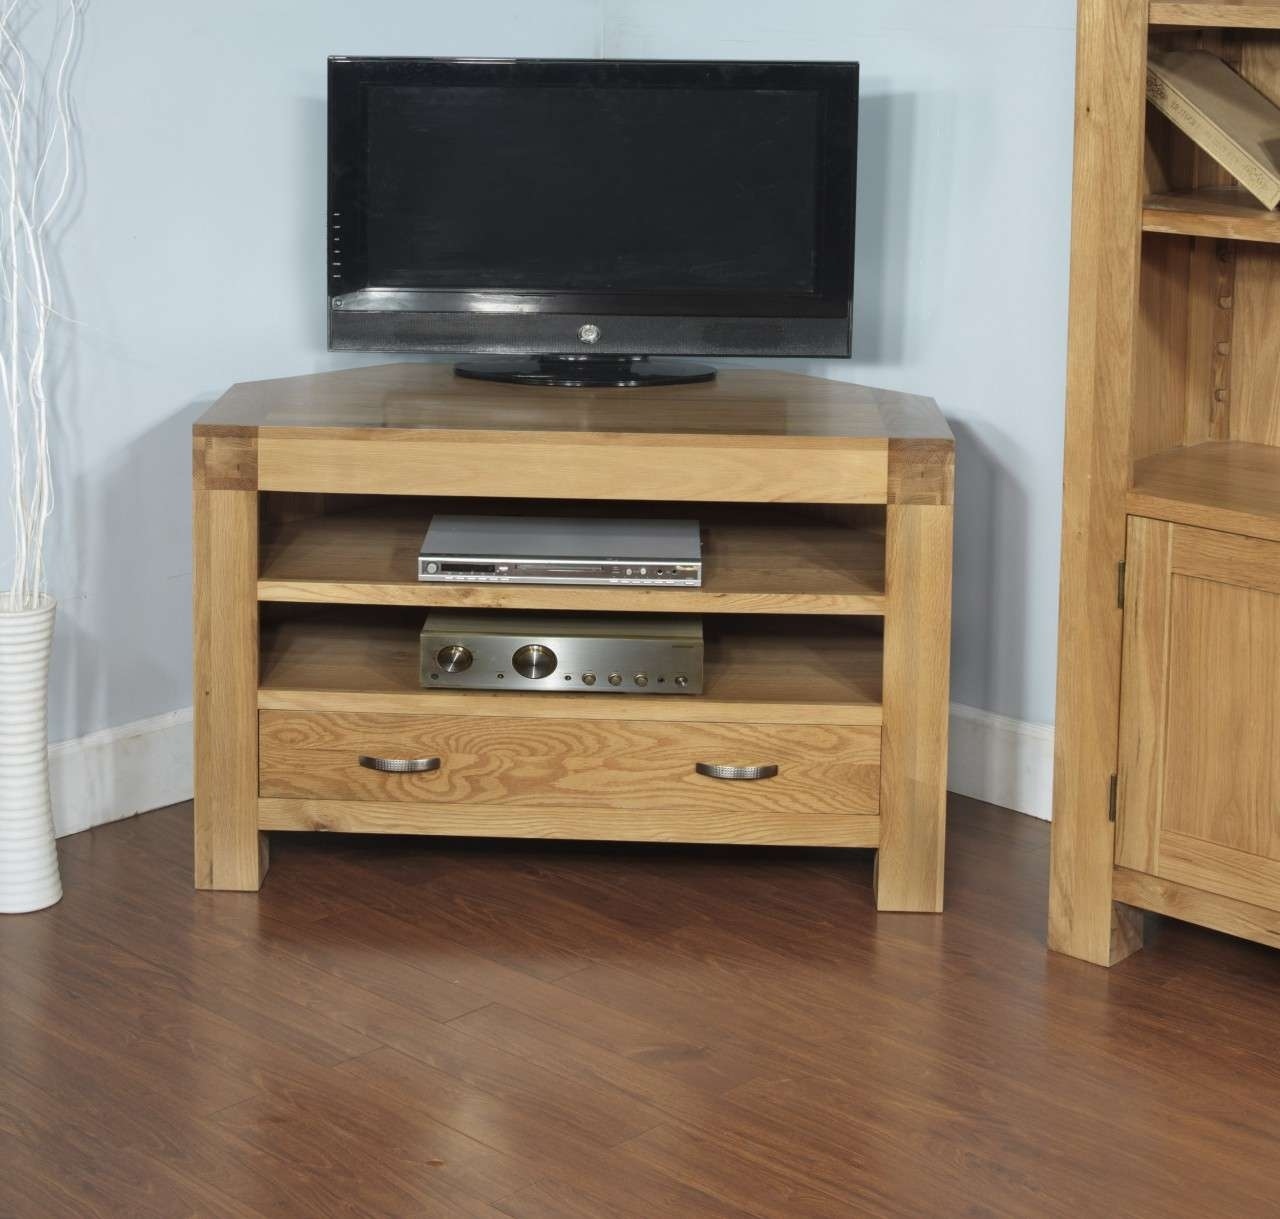 Rivermead Solid Oak Modern Furniture Widescreen Corner Tv Cabinet Intended For Oak Corner Tv Cabinets (View 8 of 20)